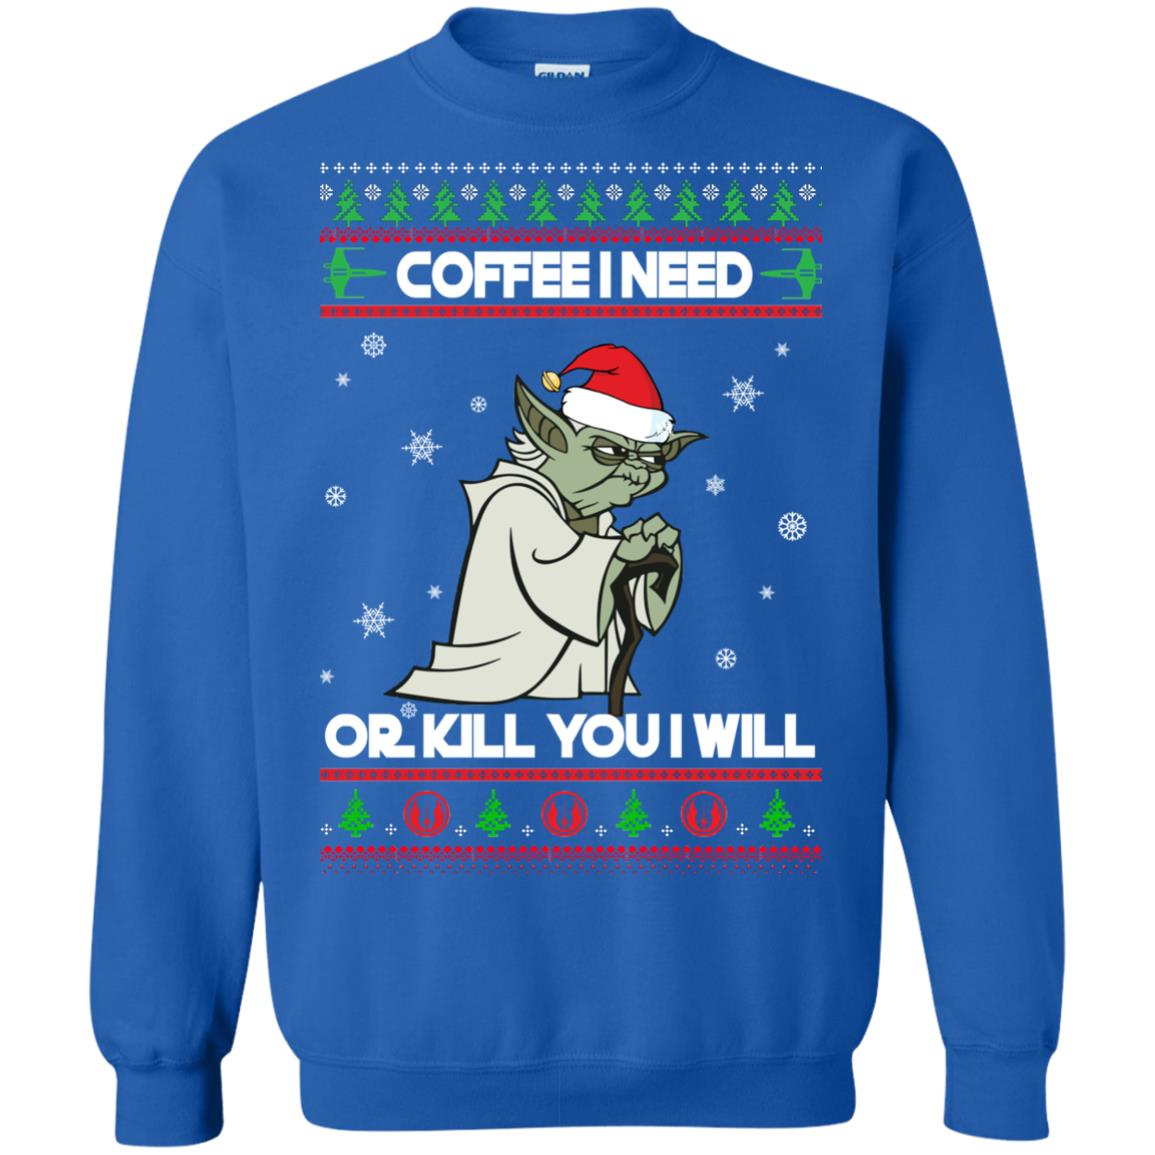 image 1246px Star Wars Yoda Sweater: Coffee I Need Or Kill You I Will Christmas Sweater